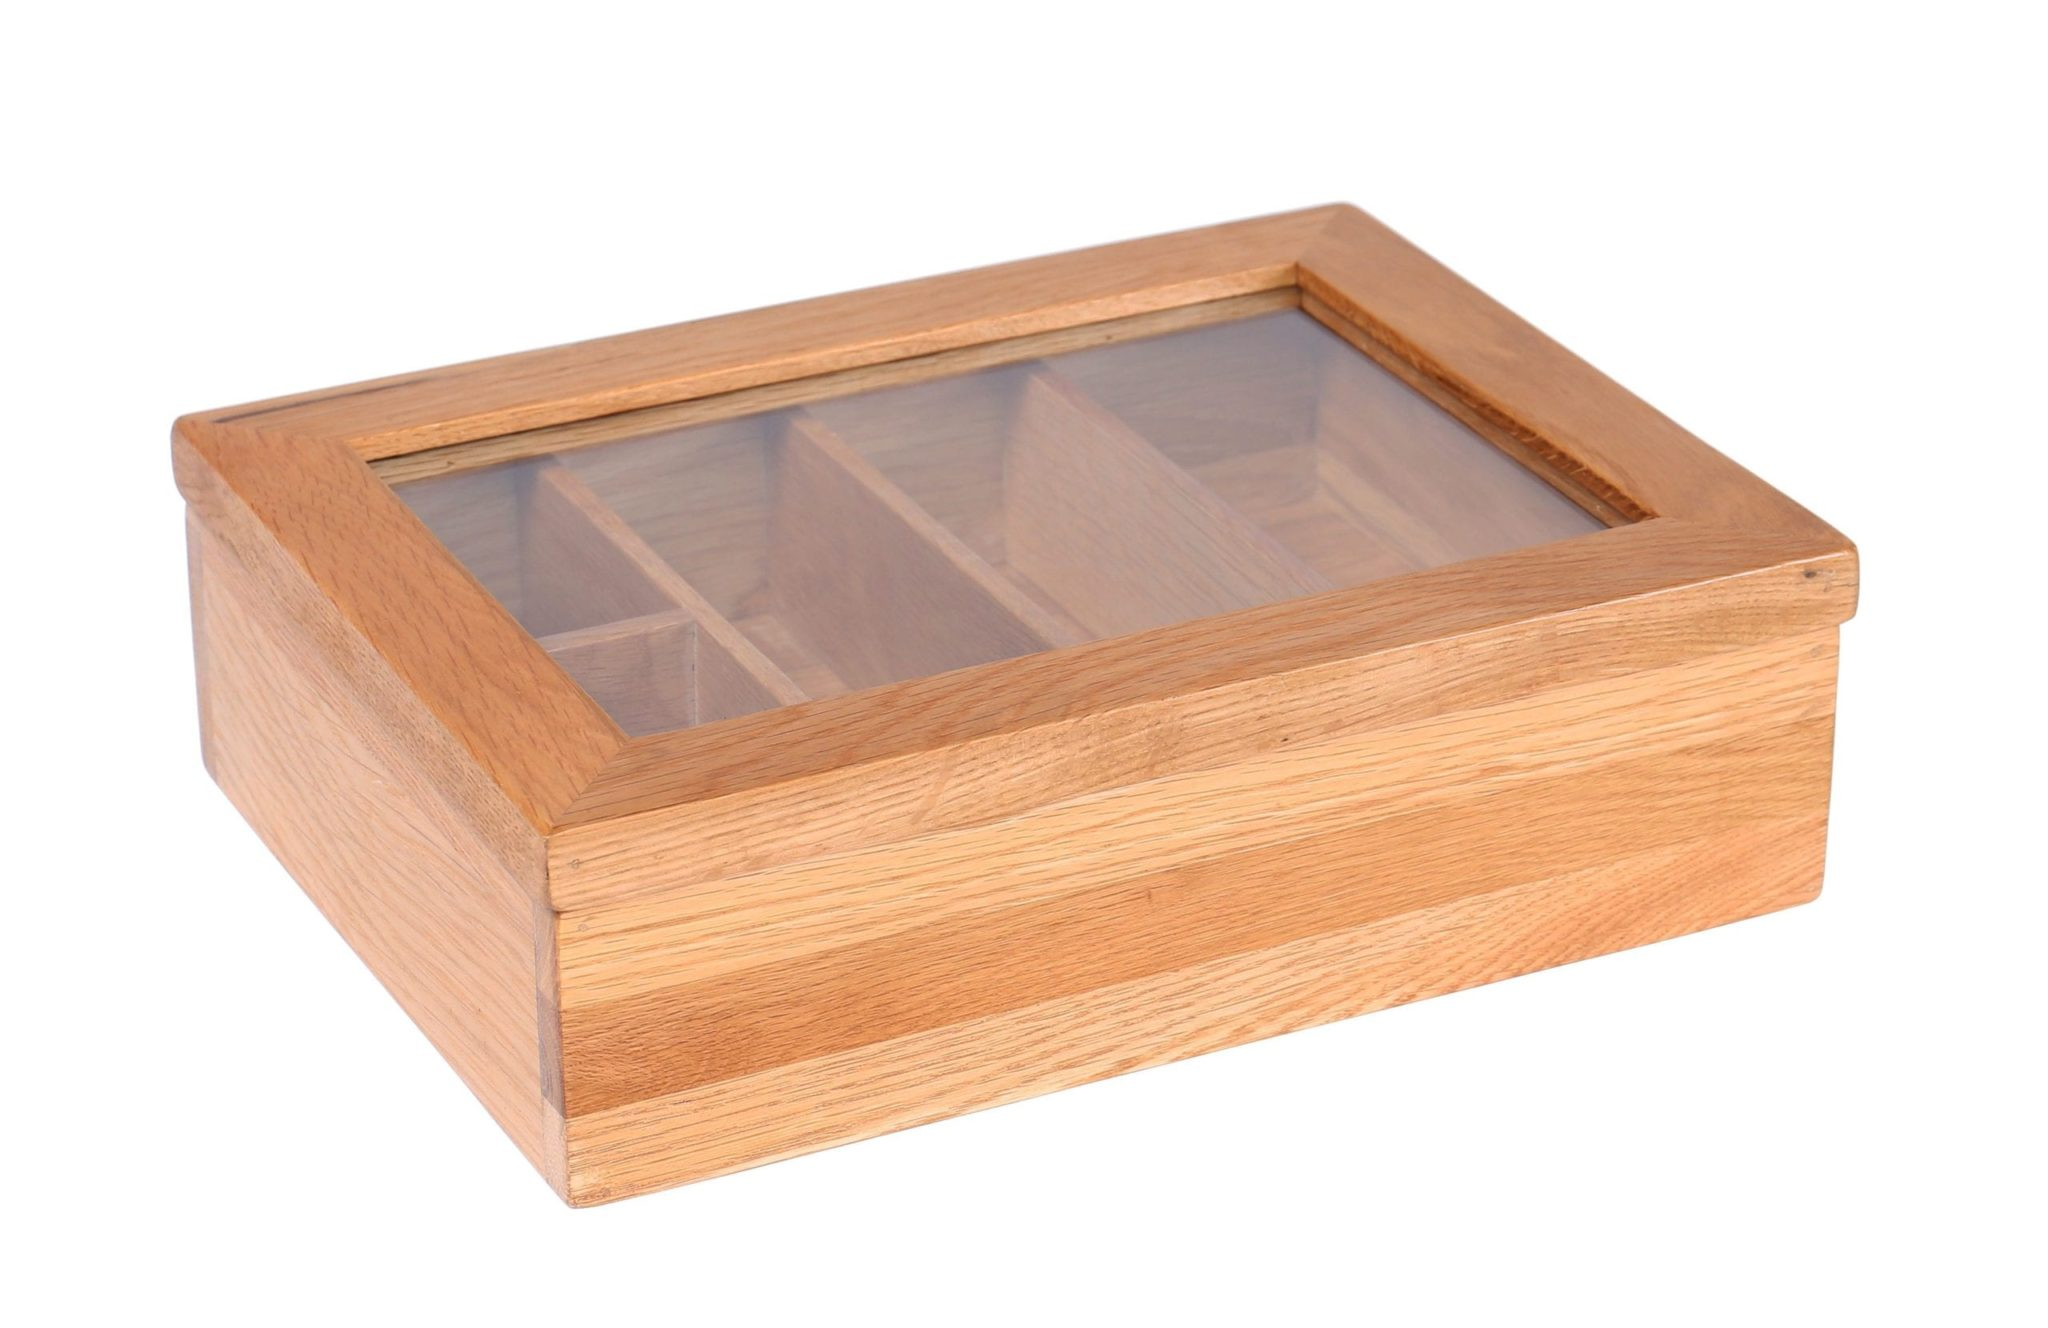 LER003 oak Cutlery box 4